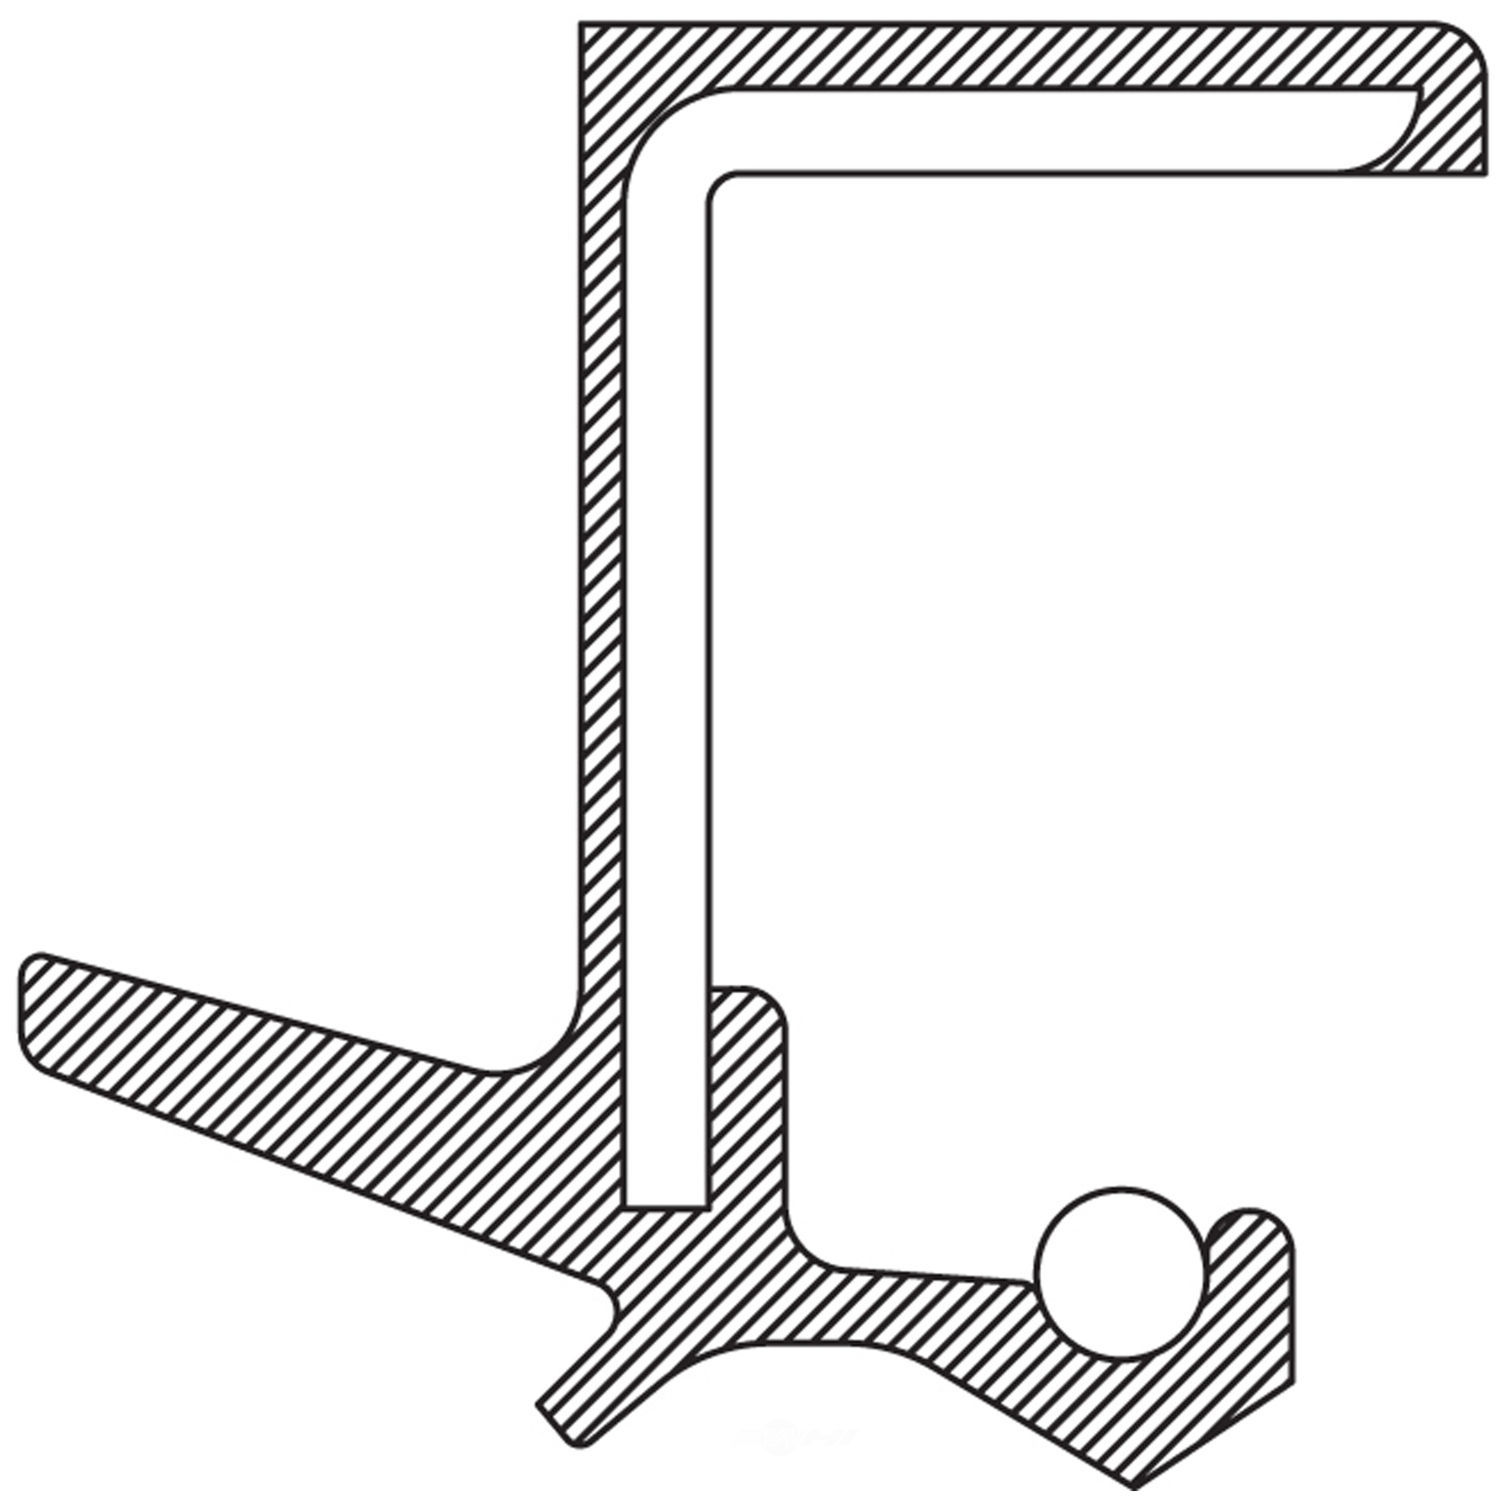 NATIONAL SEALS - Axle Spindle Seal - NAT 710453